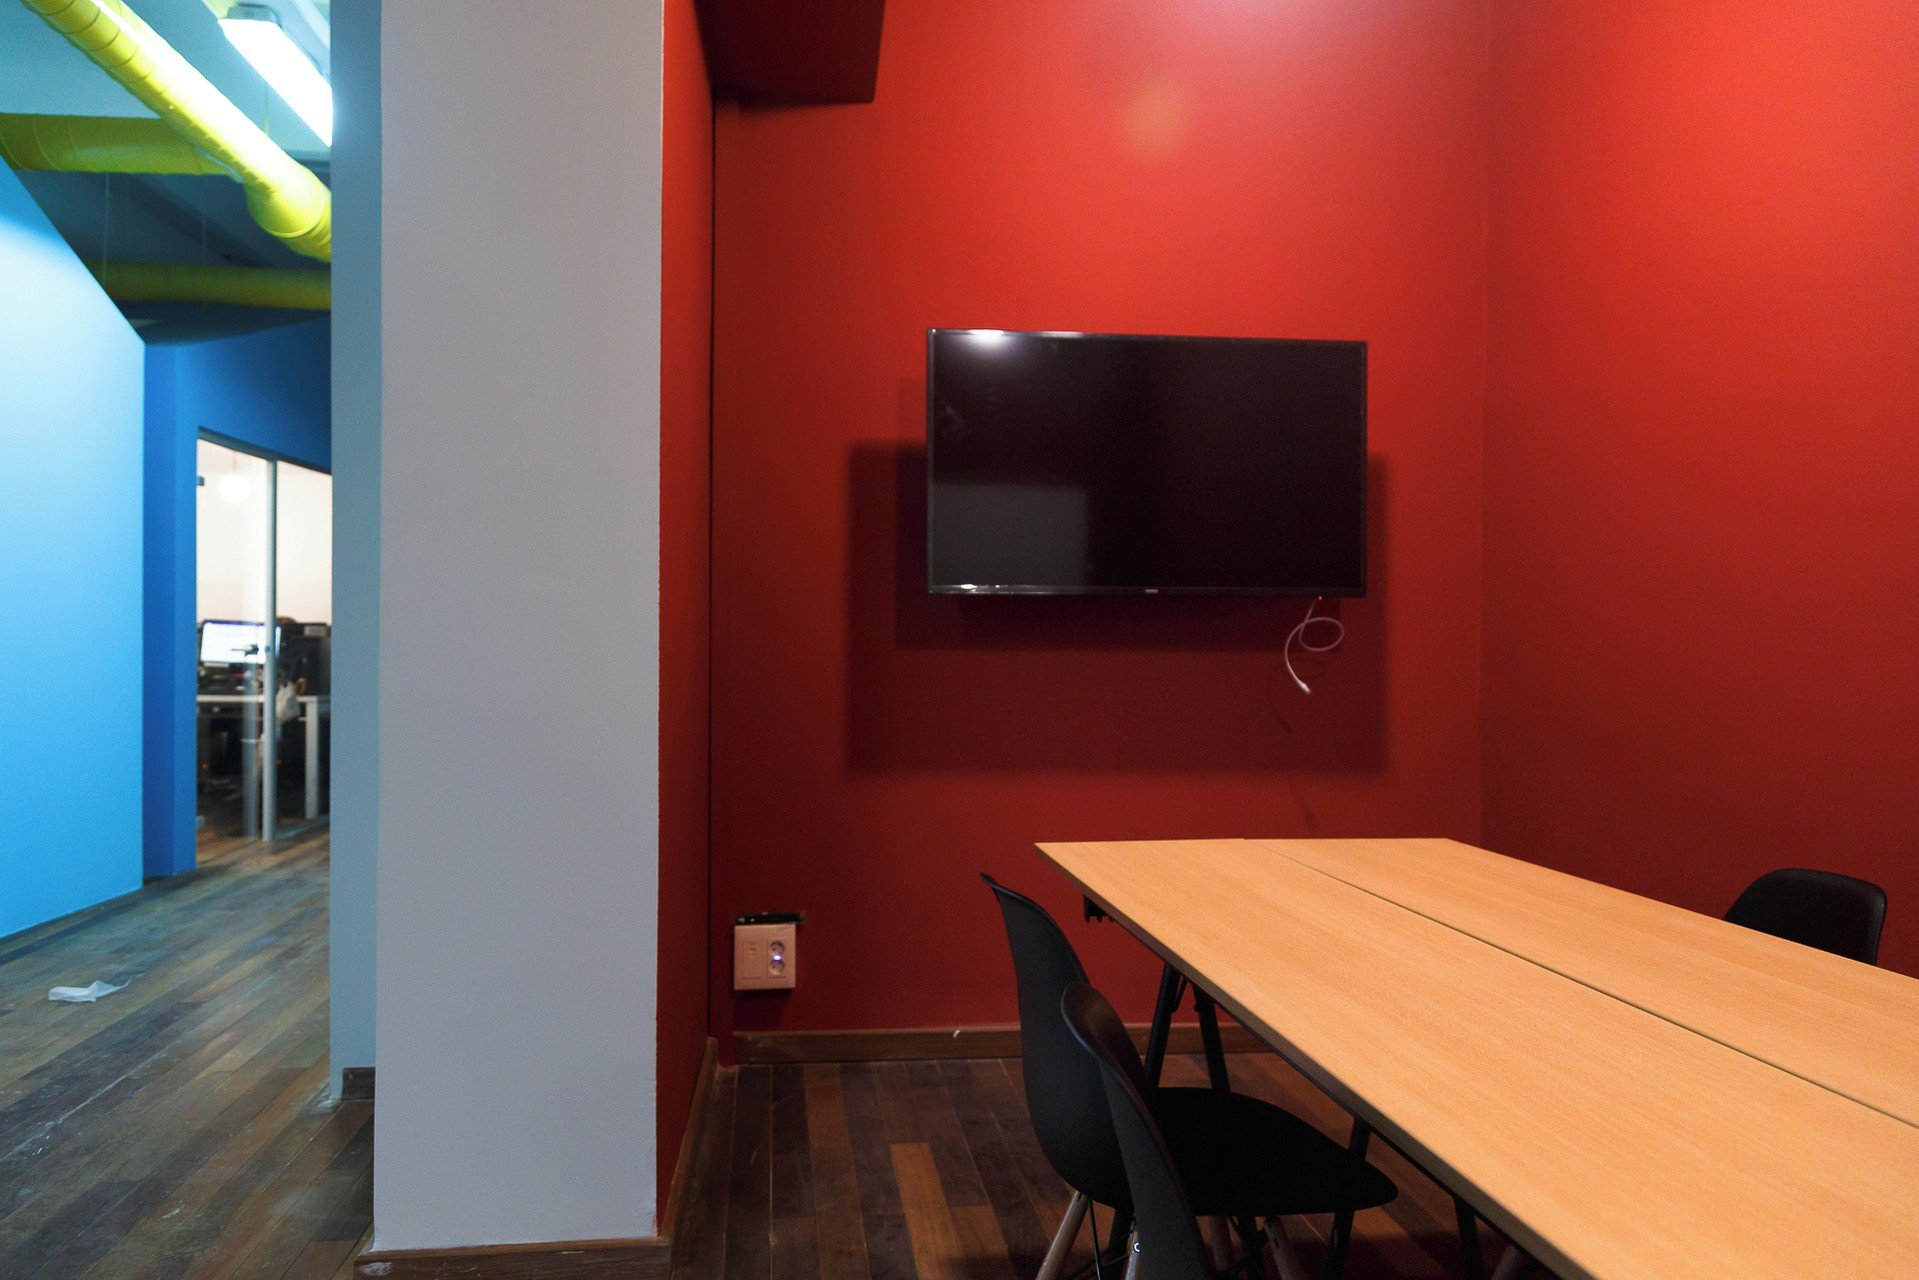 Barcelona training rooms Meetingraum CREC Coworking Eixample -Meeting Room Moulin Rouge image 1